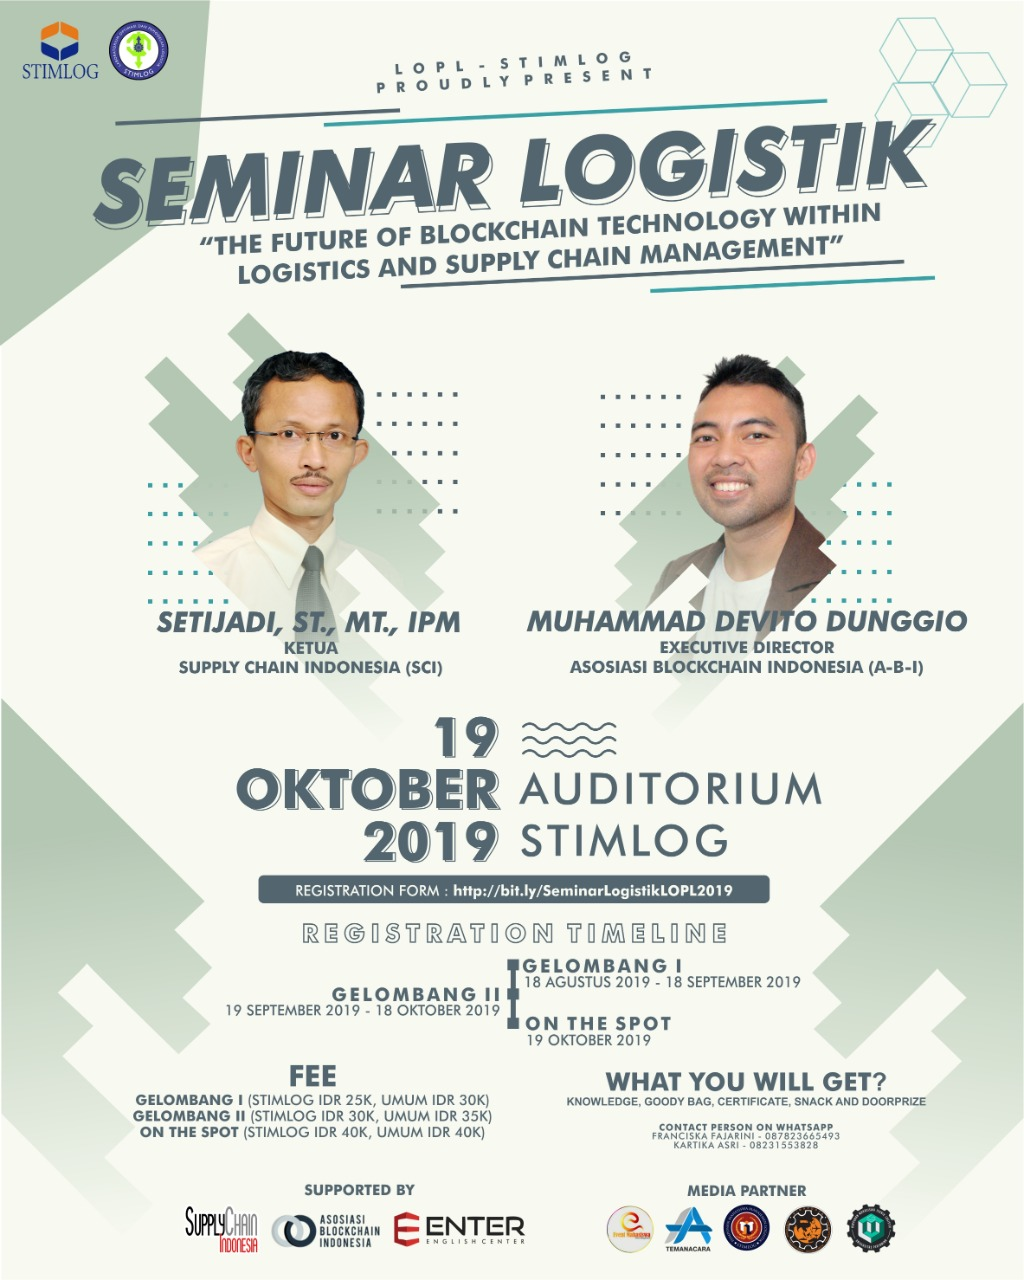 SEMINAR LOGISTIK LOPL - STIMLOG 2019: The Future of Blockchain Technology Within Logistics And Supply Chain Management